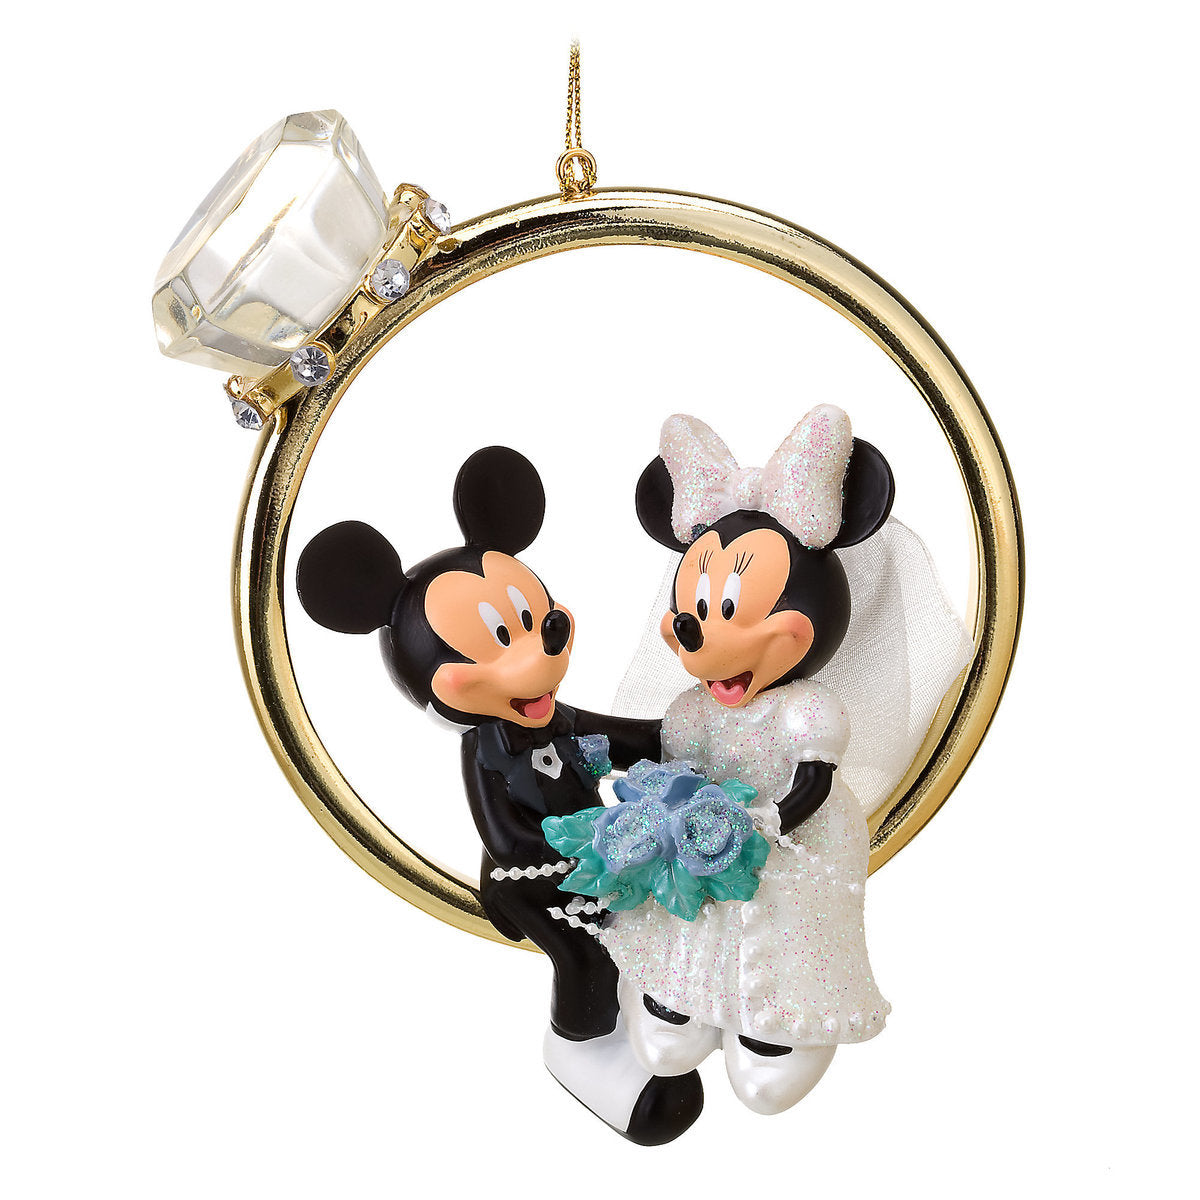 Disney Parks Minnie and Mickey Mouse Wedding Ring Ornament ...